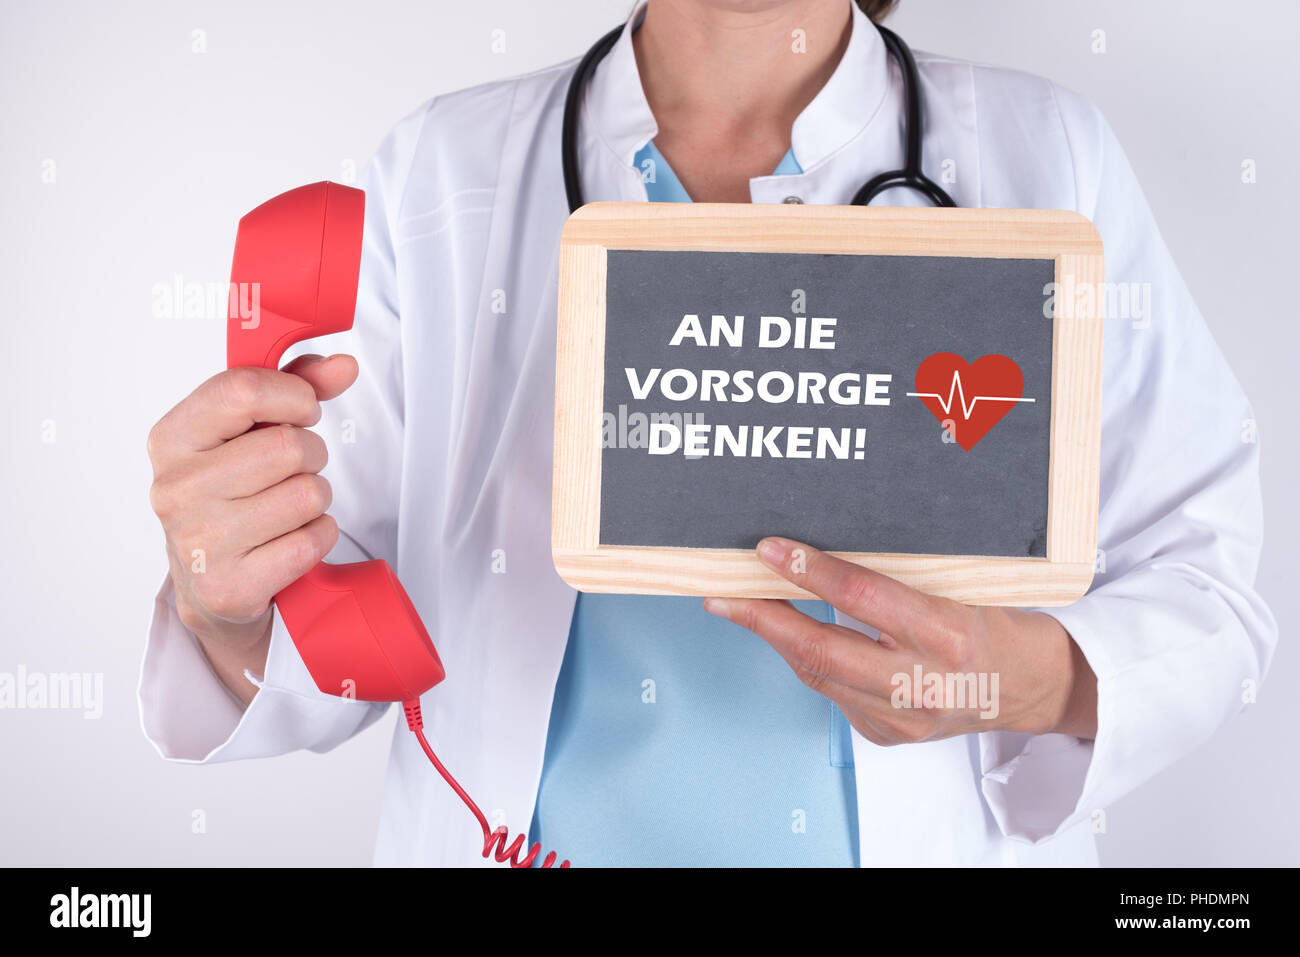 Doctor with telephone handset and sign in hand for prevention - Stock Image